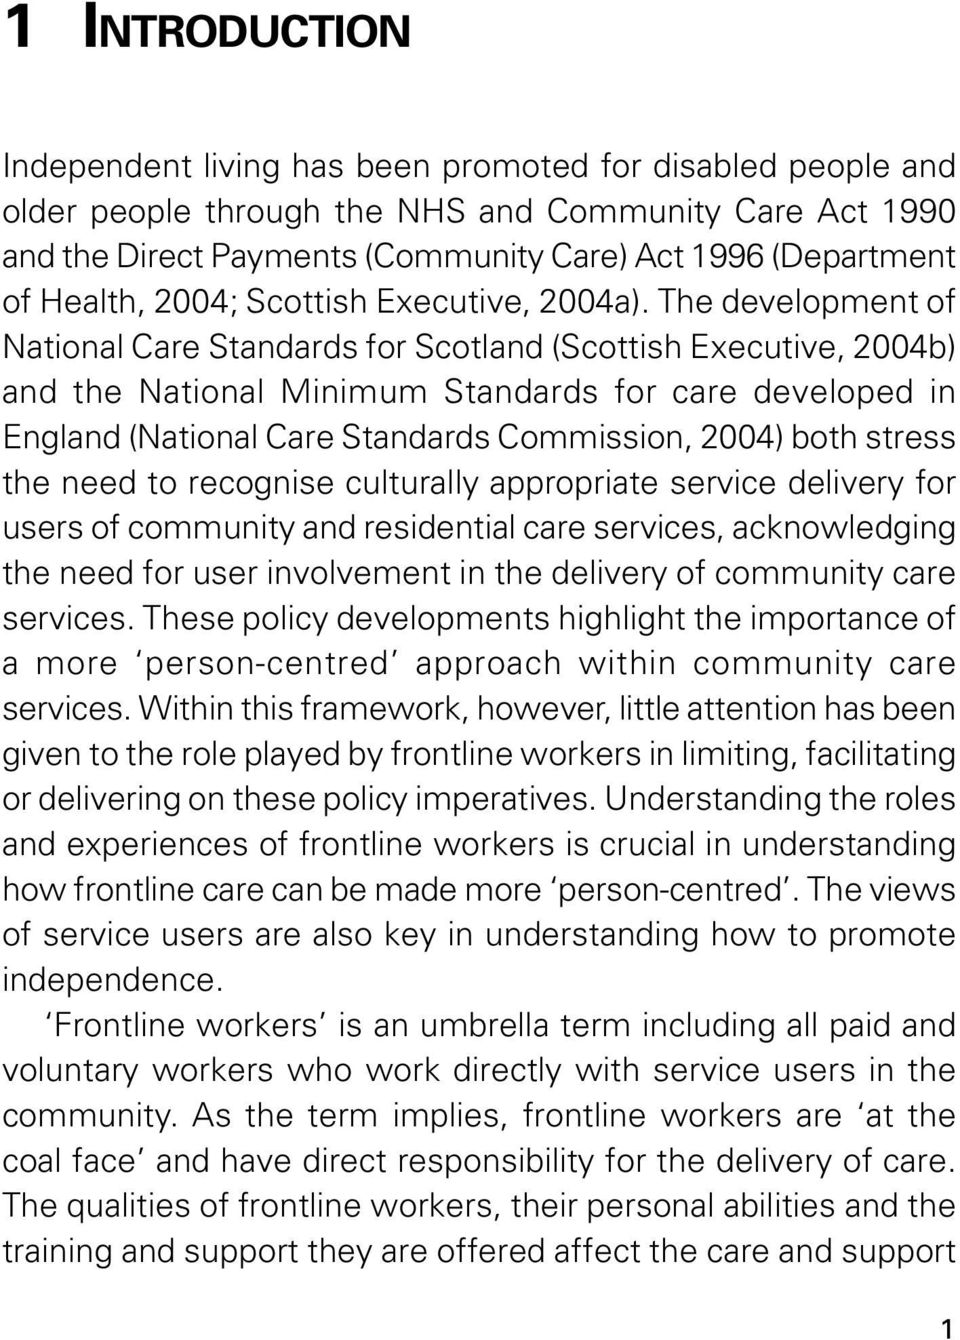 The development of National Care Standards for Scotland (Scottish Executive, 2004b) and the National Minimum Standards for care developed in England (National Care Standards Commission, 2004) both